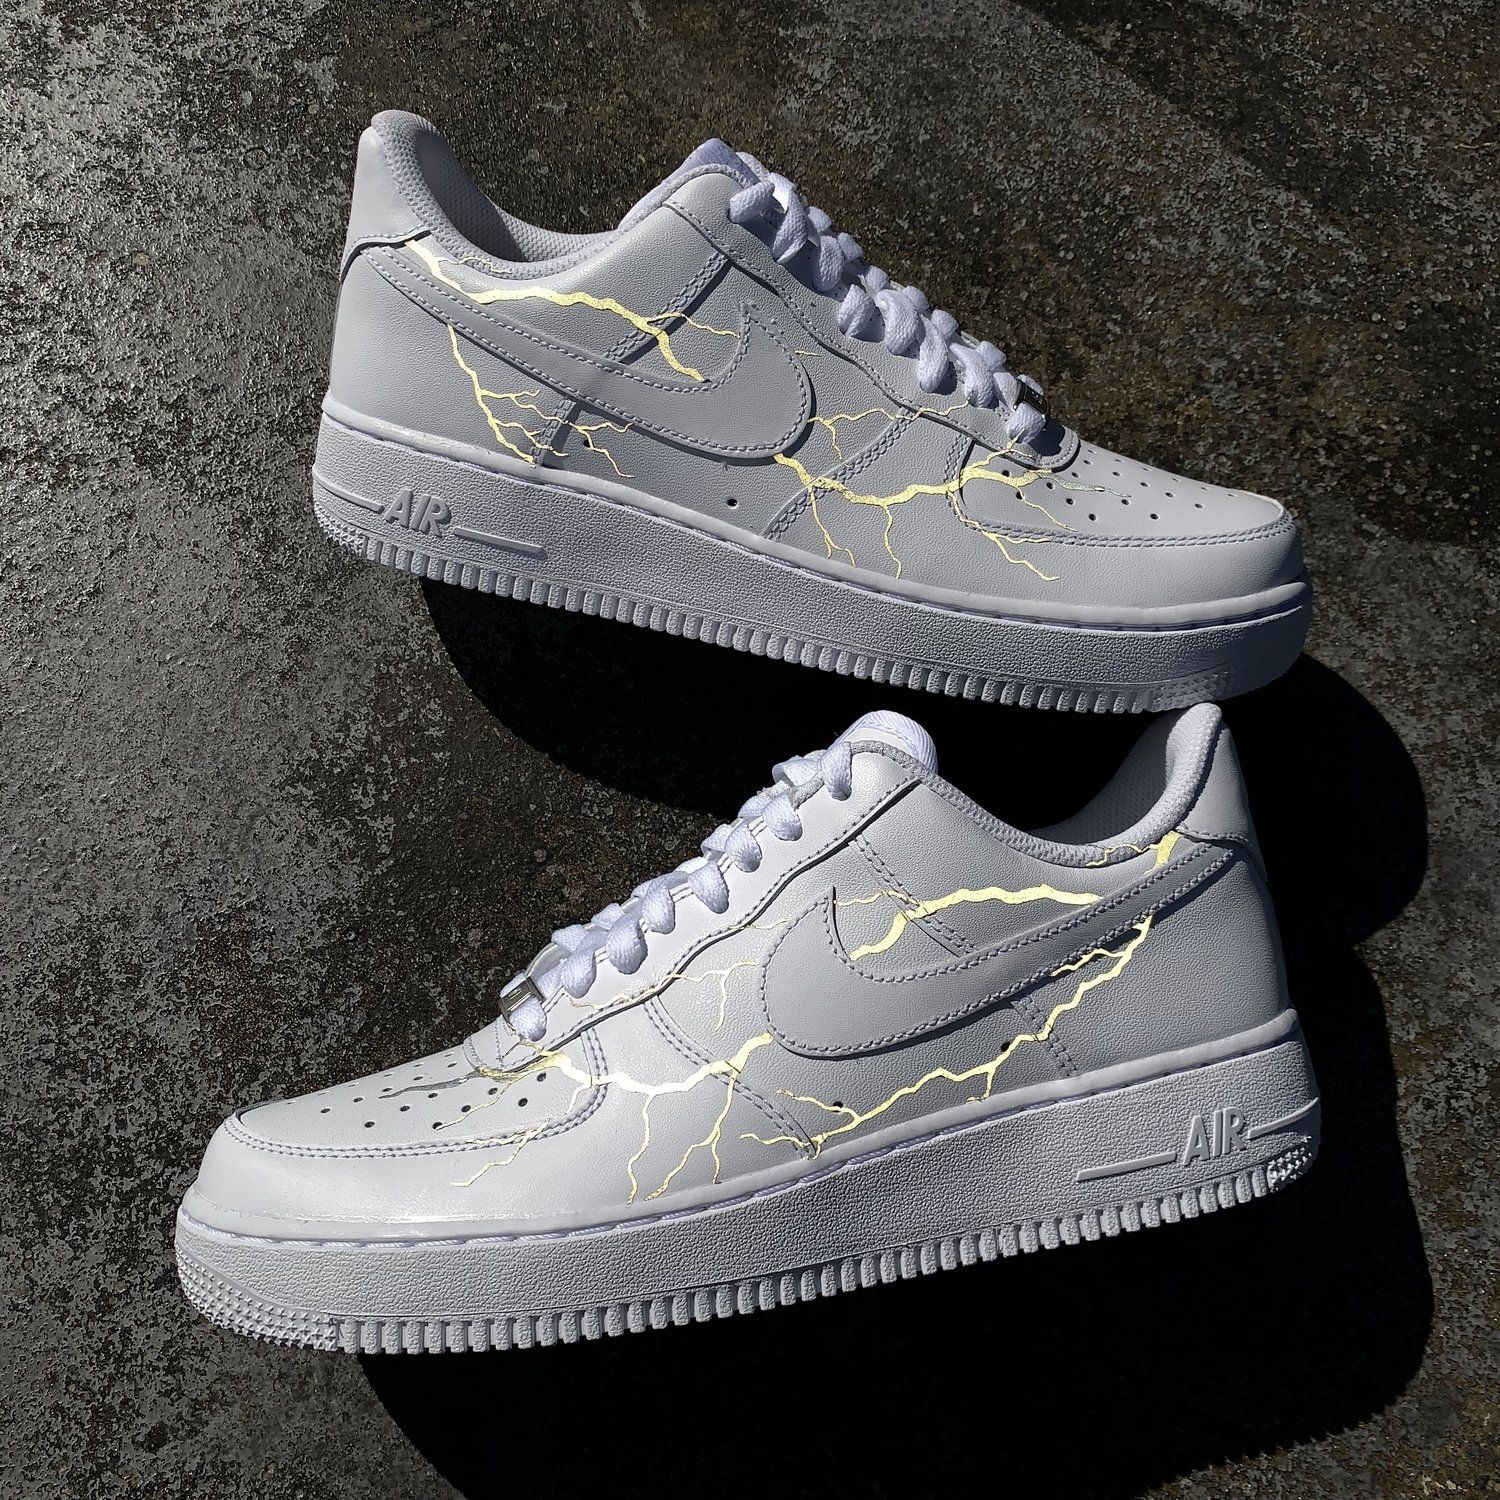 3M Lightning Air Force 1 Custom | Aesthetic shoes, Sneakers